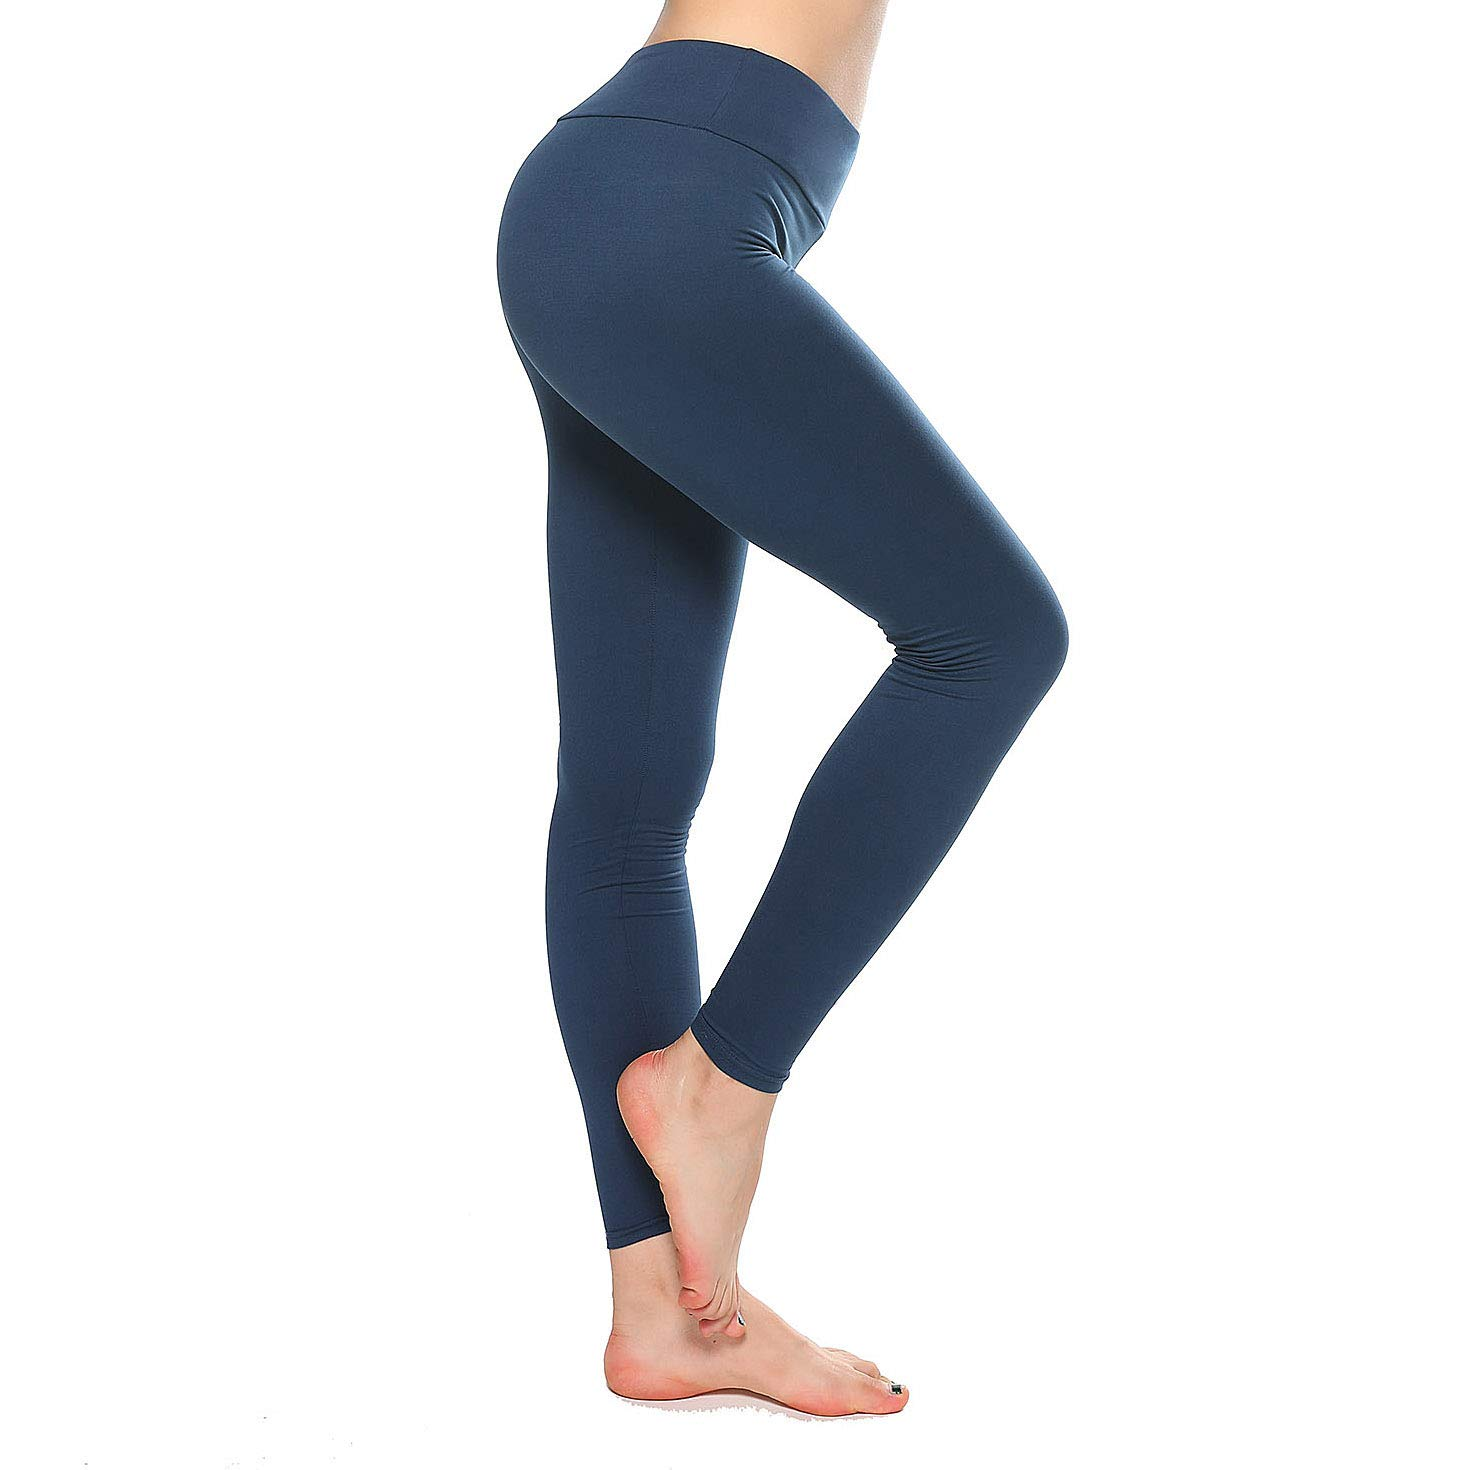 K&T Super Soft Buttery Leggings - High Waisted Slimming Leggings - Womens Tummy Control Pants (One Size, Navy)